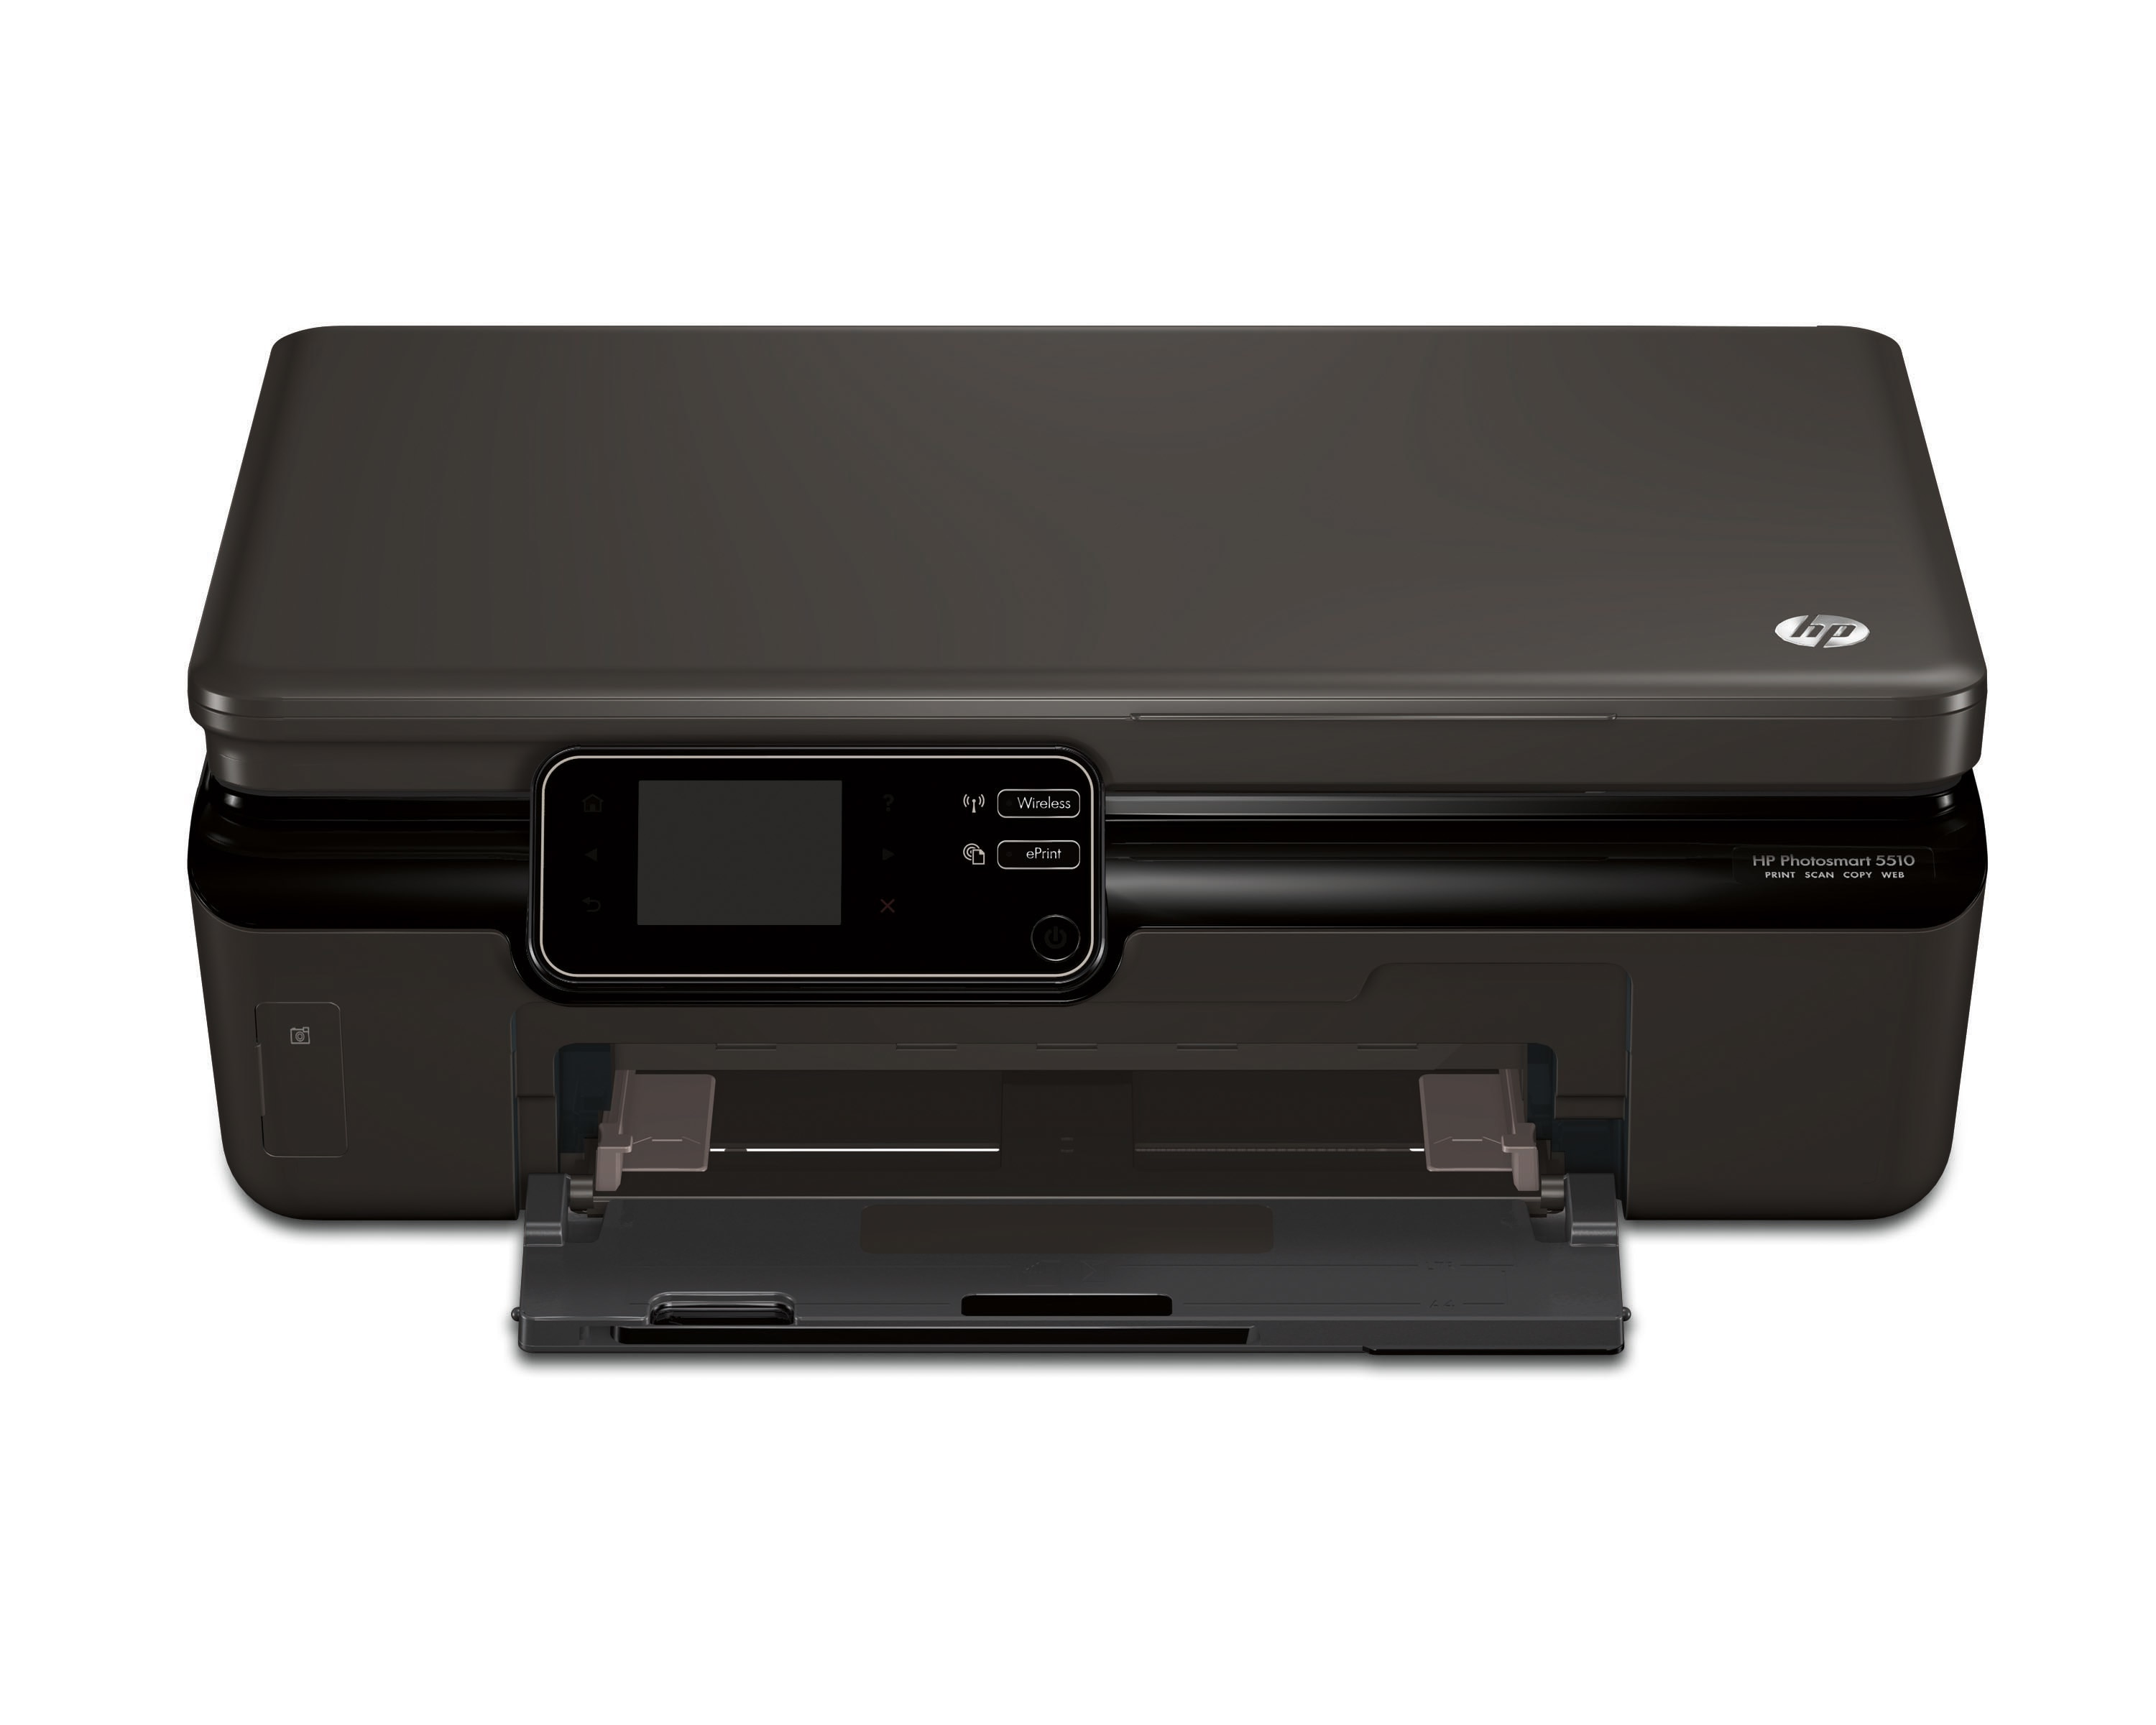 CQ176a HP Photosmart 5510 e-All-in-One Printer series - Refurbished